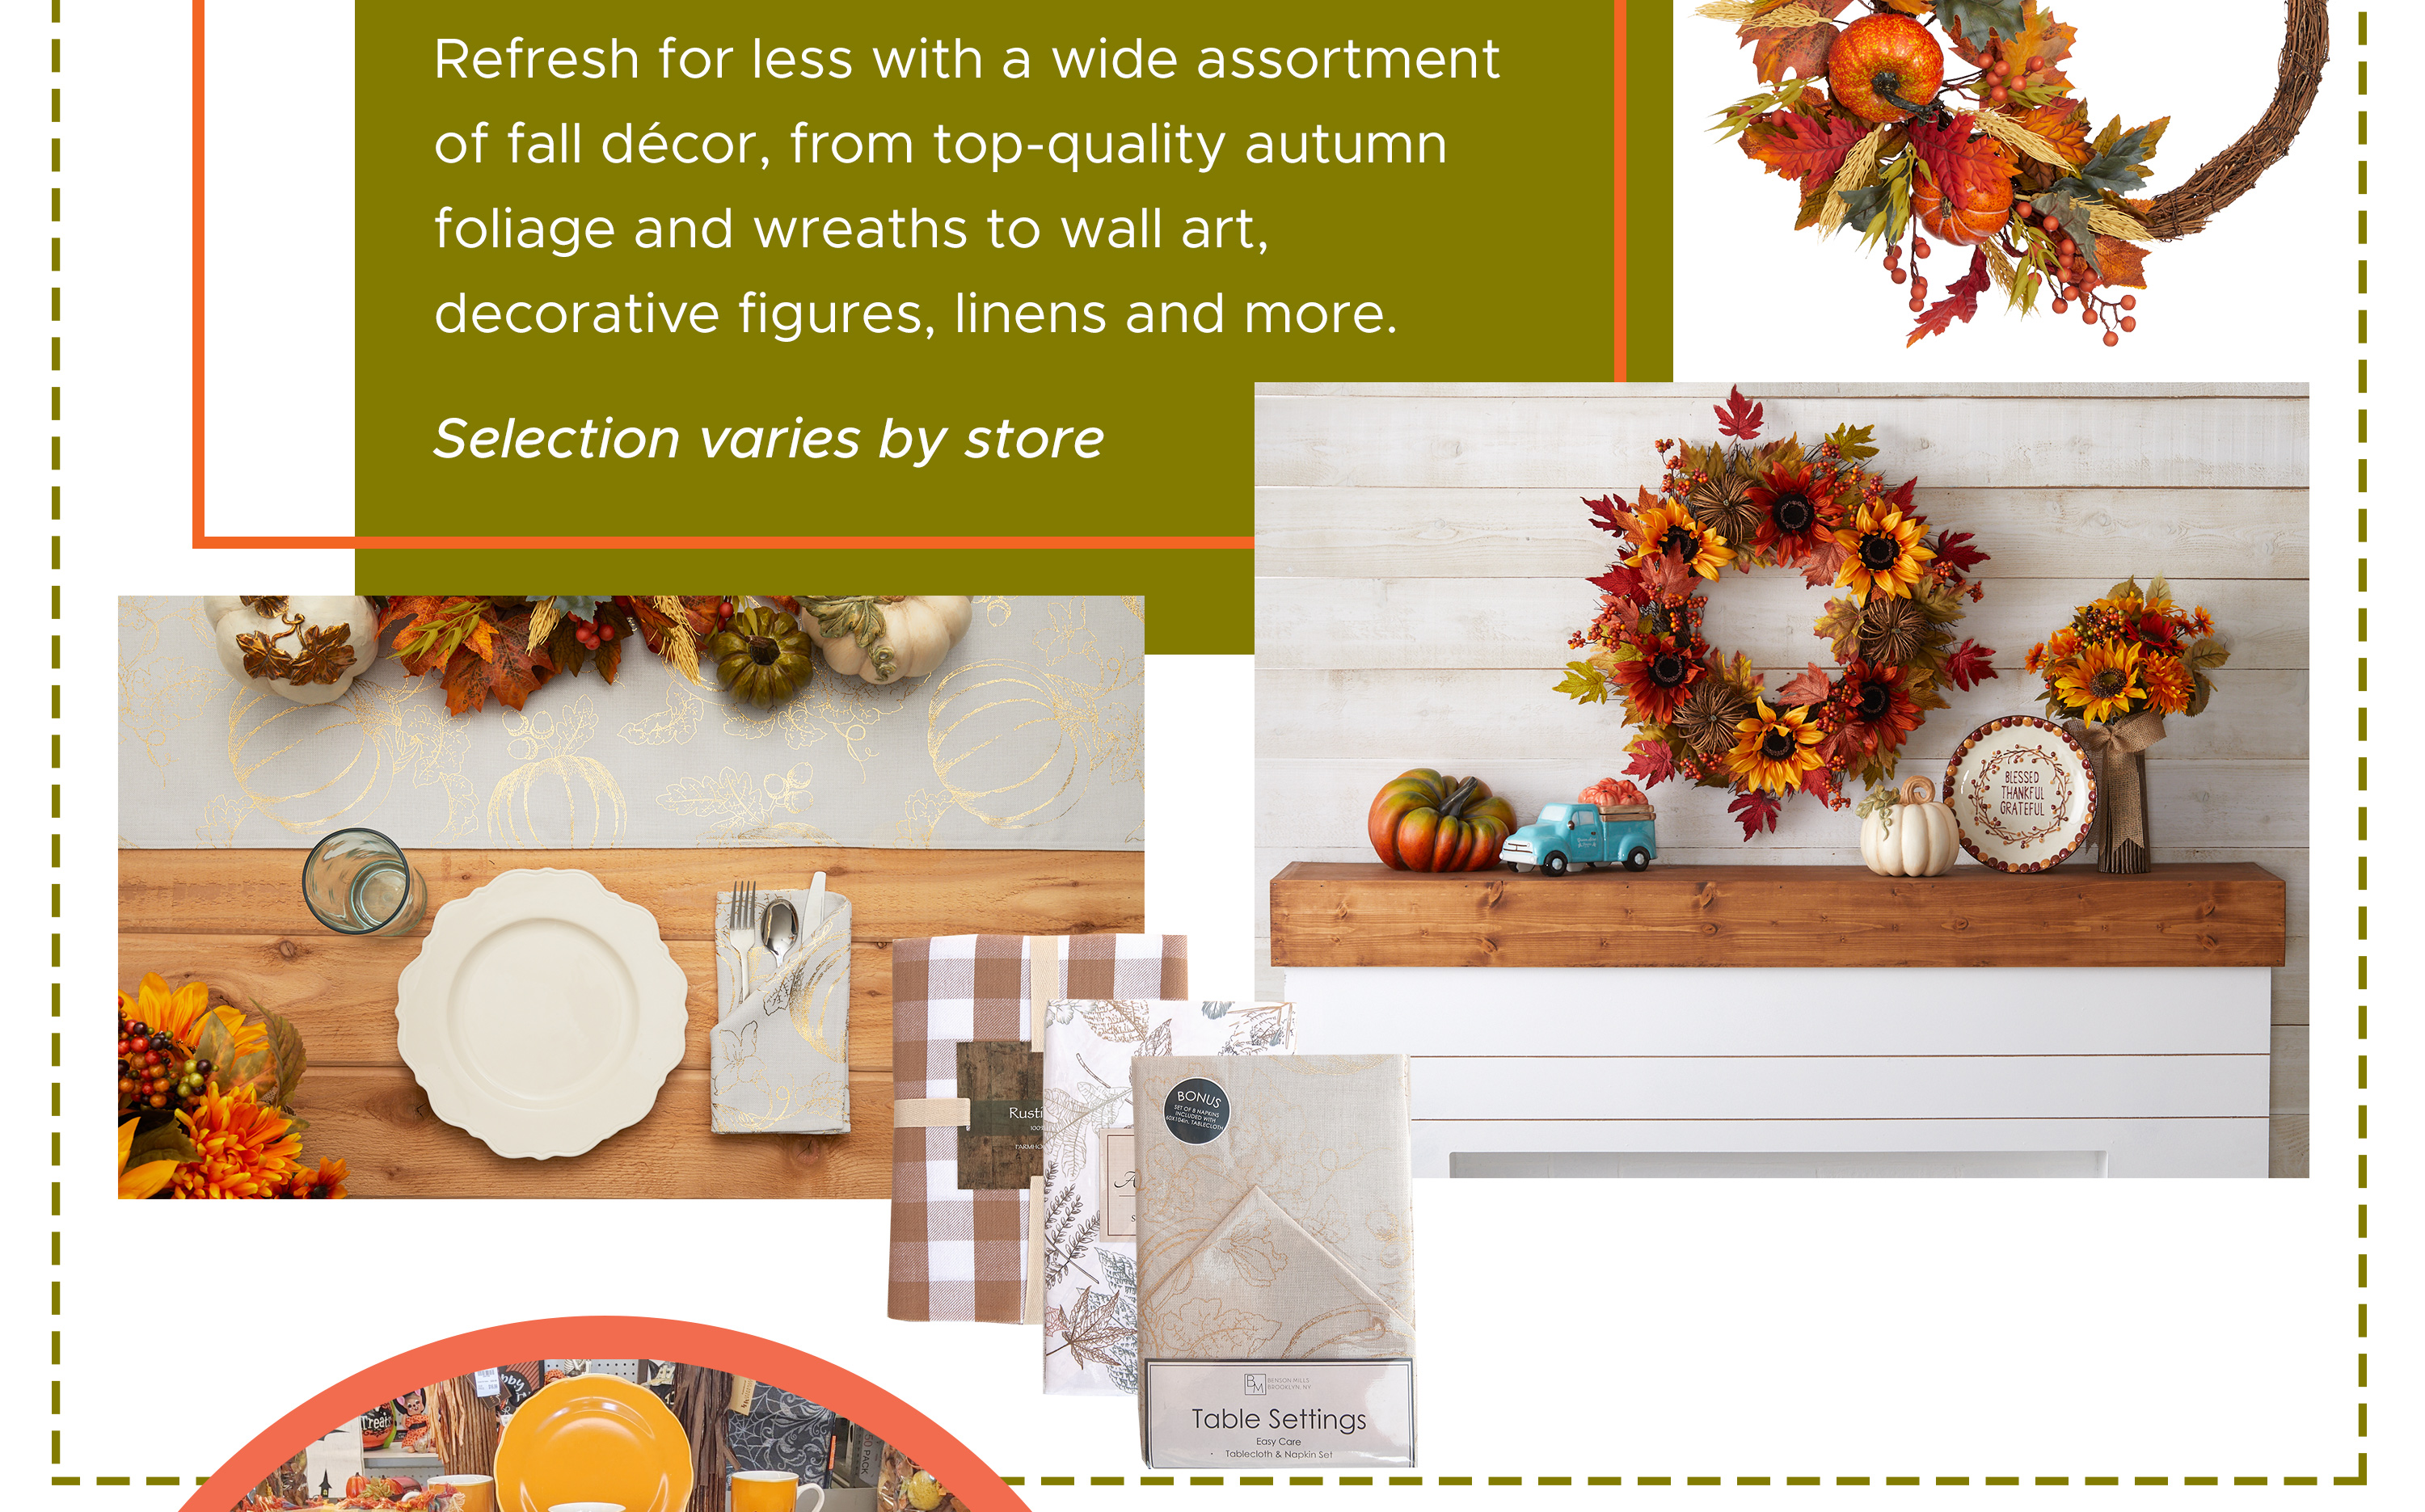 Refresh for less with a wide assortment of fall décor, from top-quality autumn foliage and wreaths to wall art, decorative figures, linens and more.